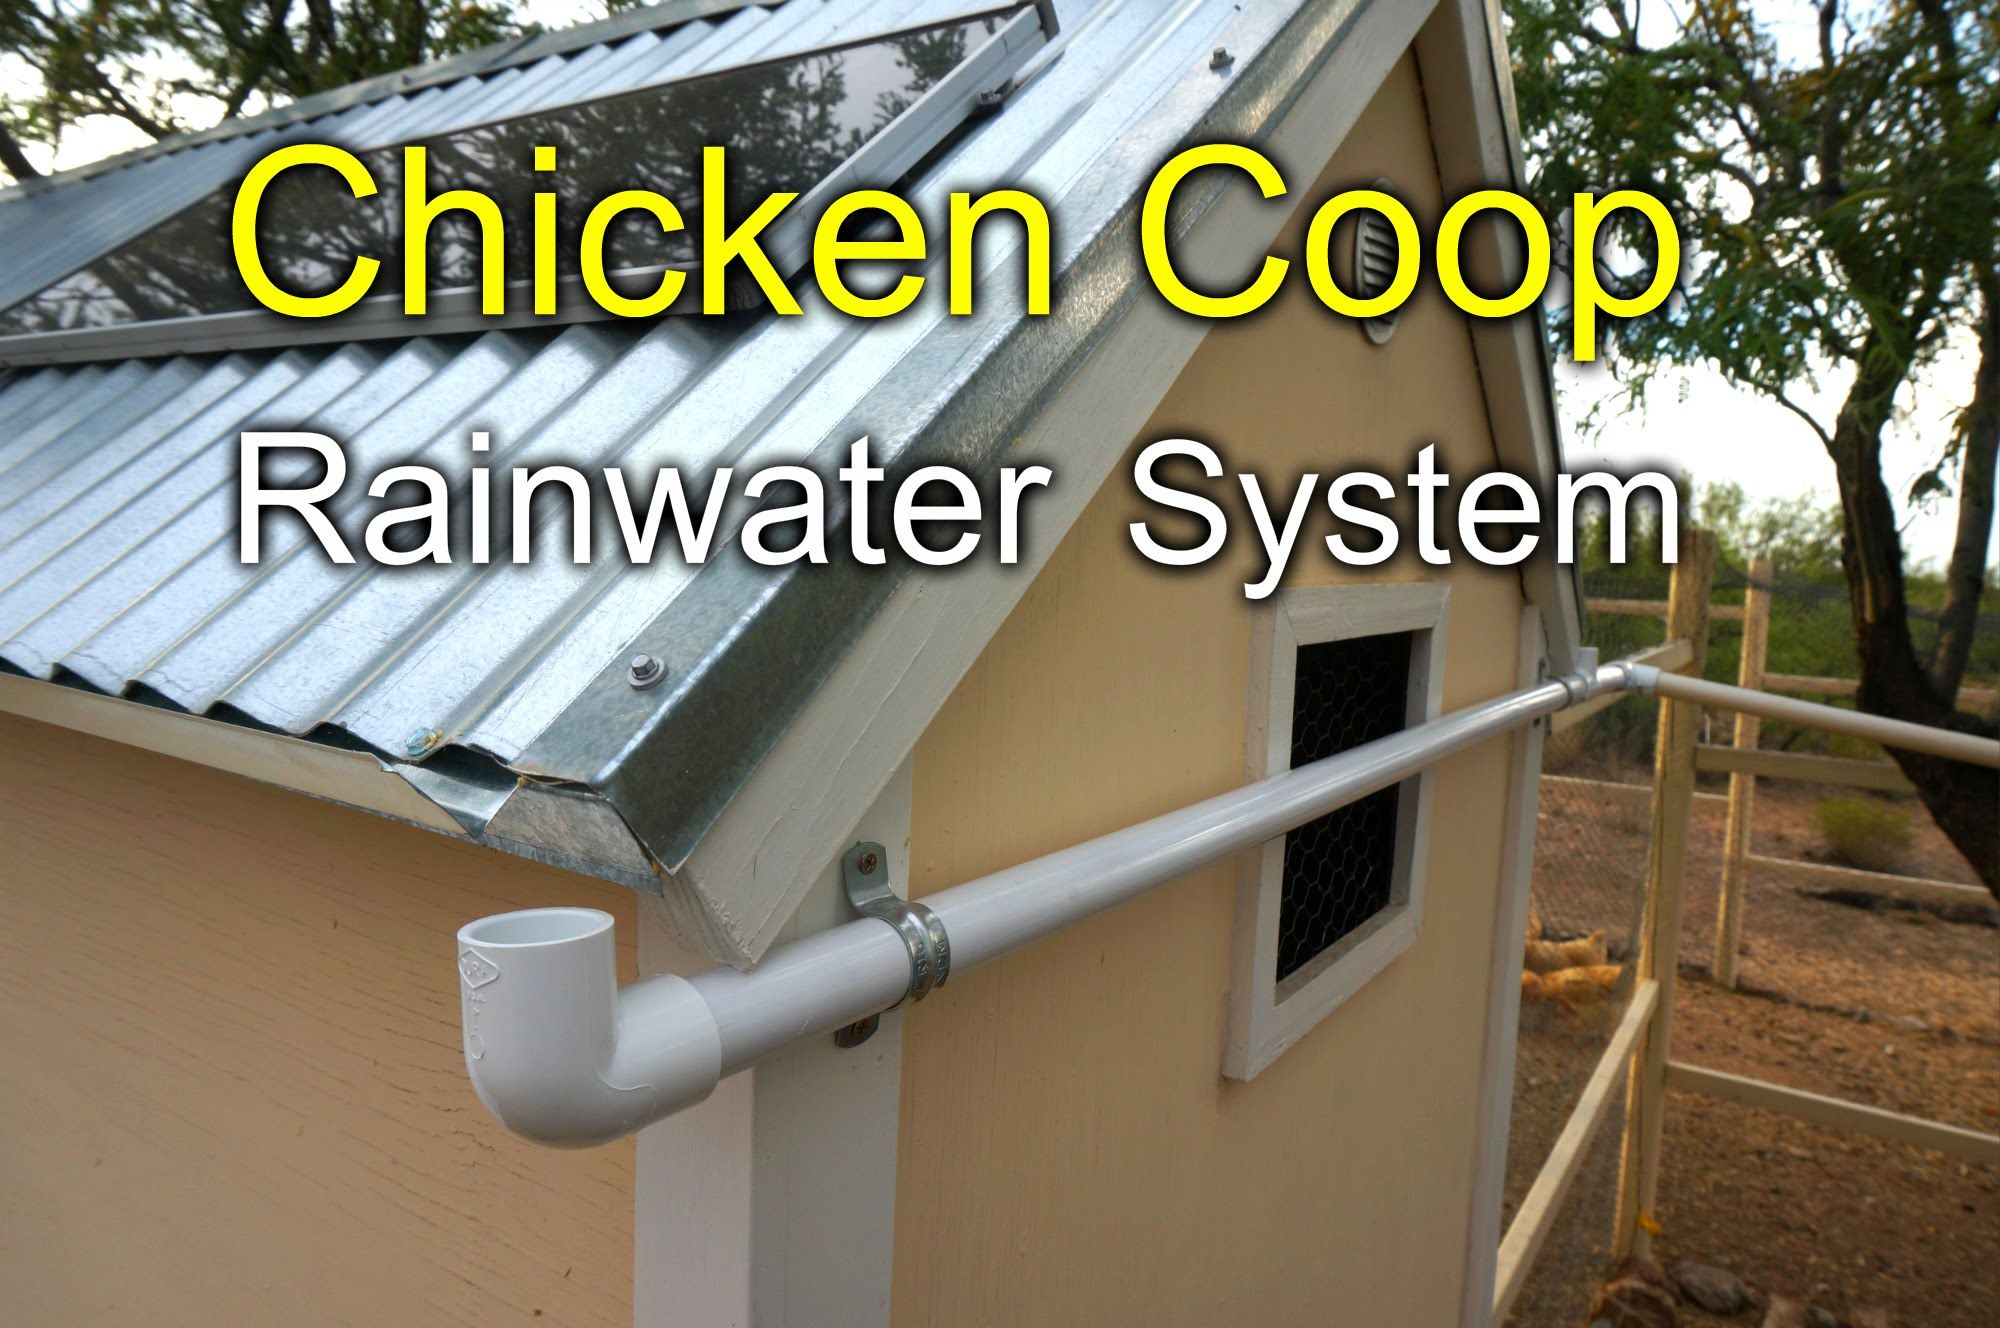 Here Is A Quick How To Tour And Demo Of My Chicken Coop Rainwater Harvesting System It S Pretty Rainwater Harvesting System Chicken Coop Rainwater Harvesting